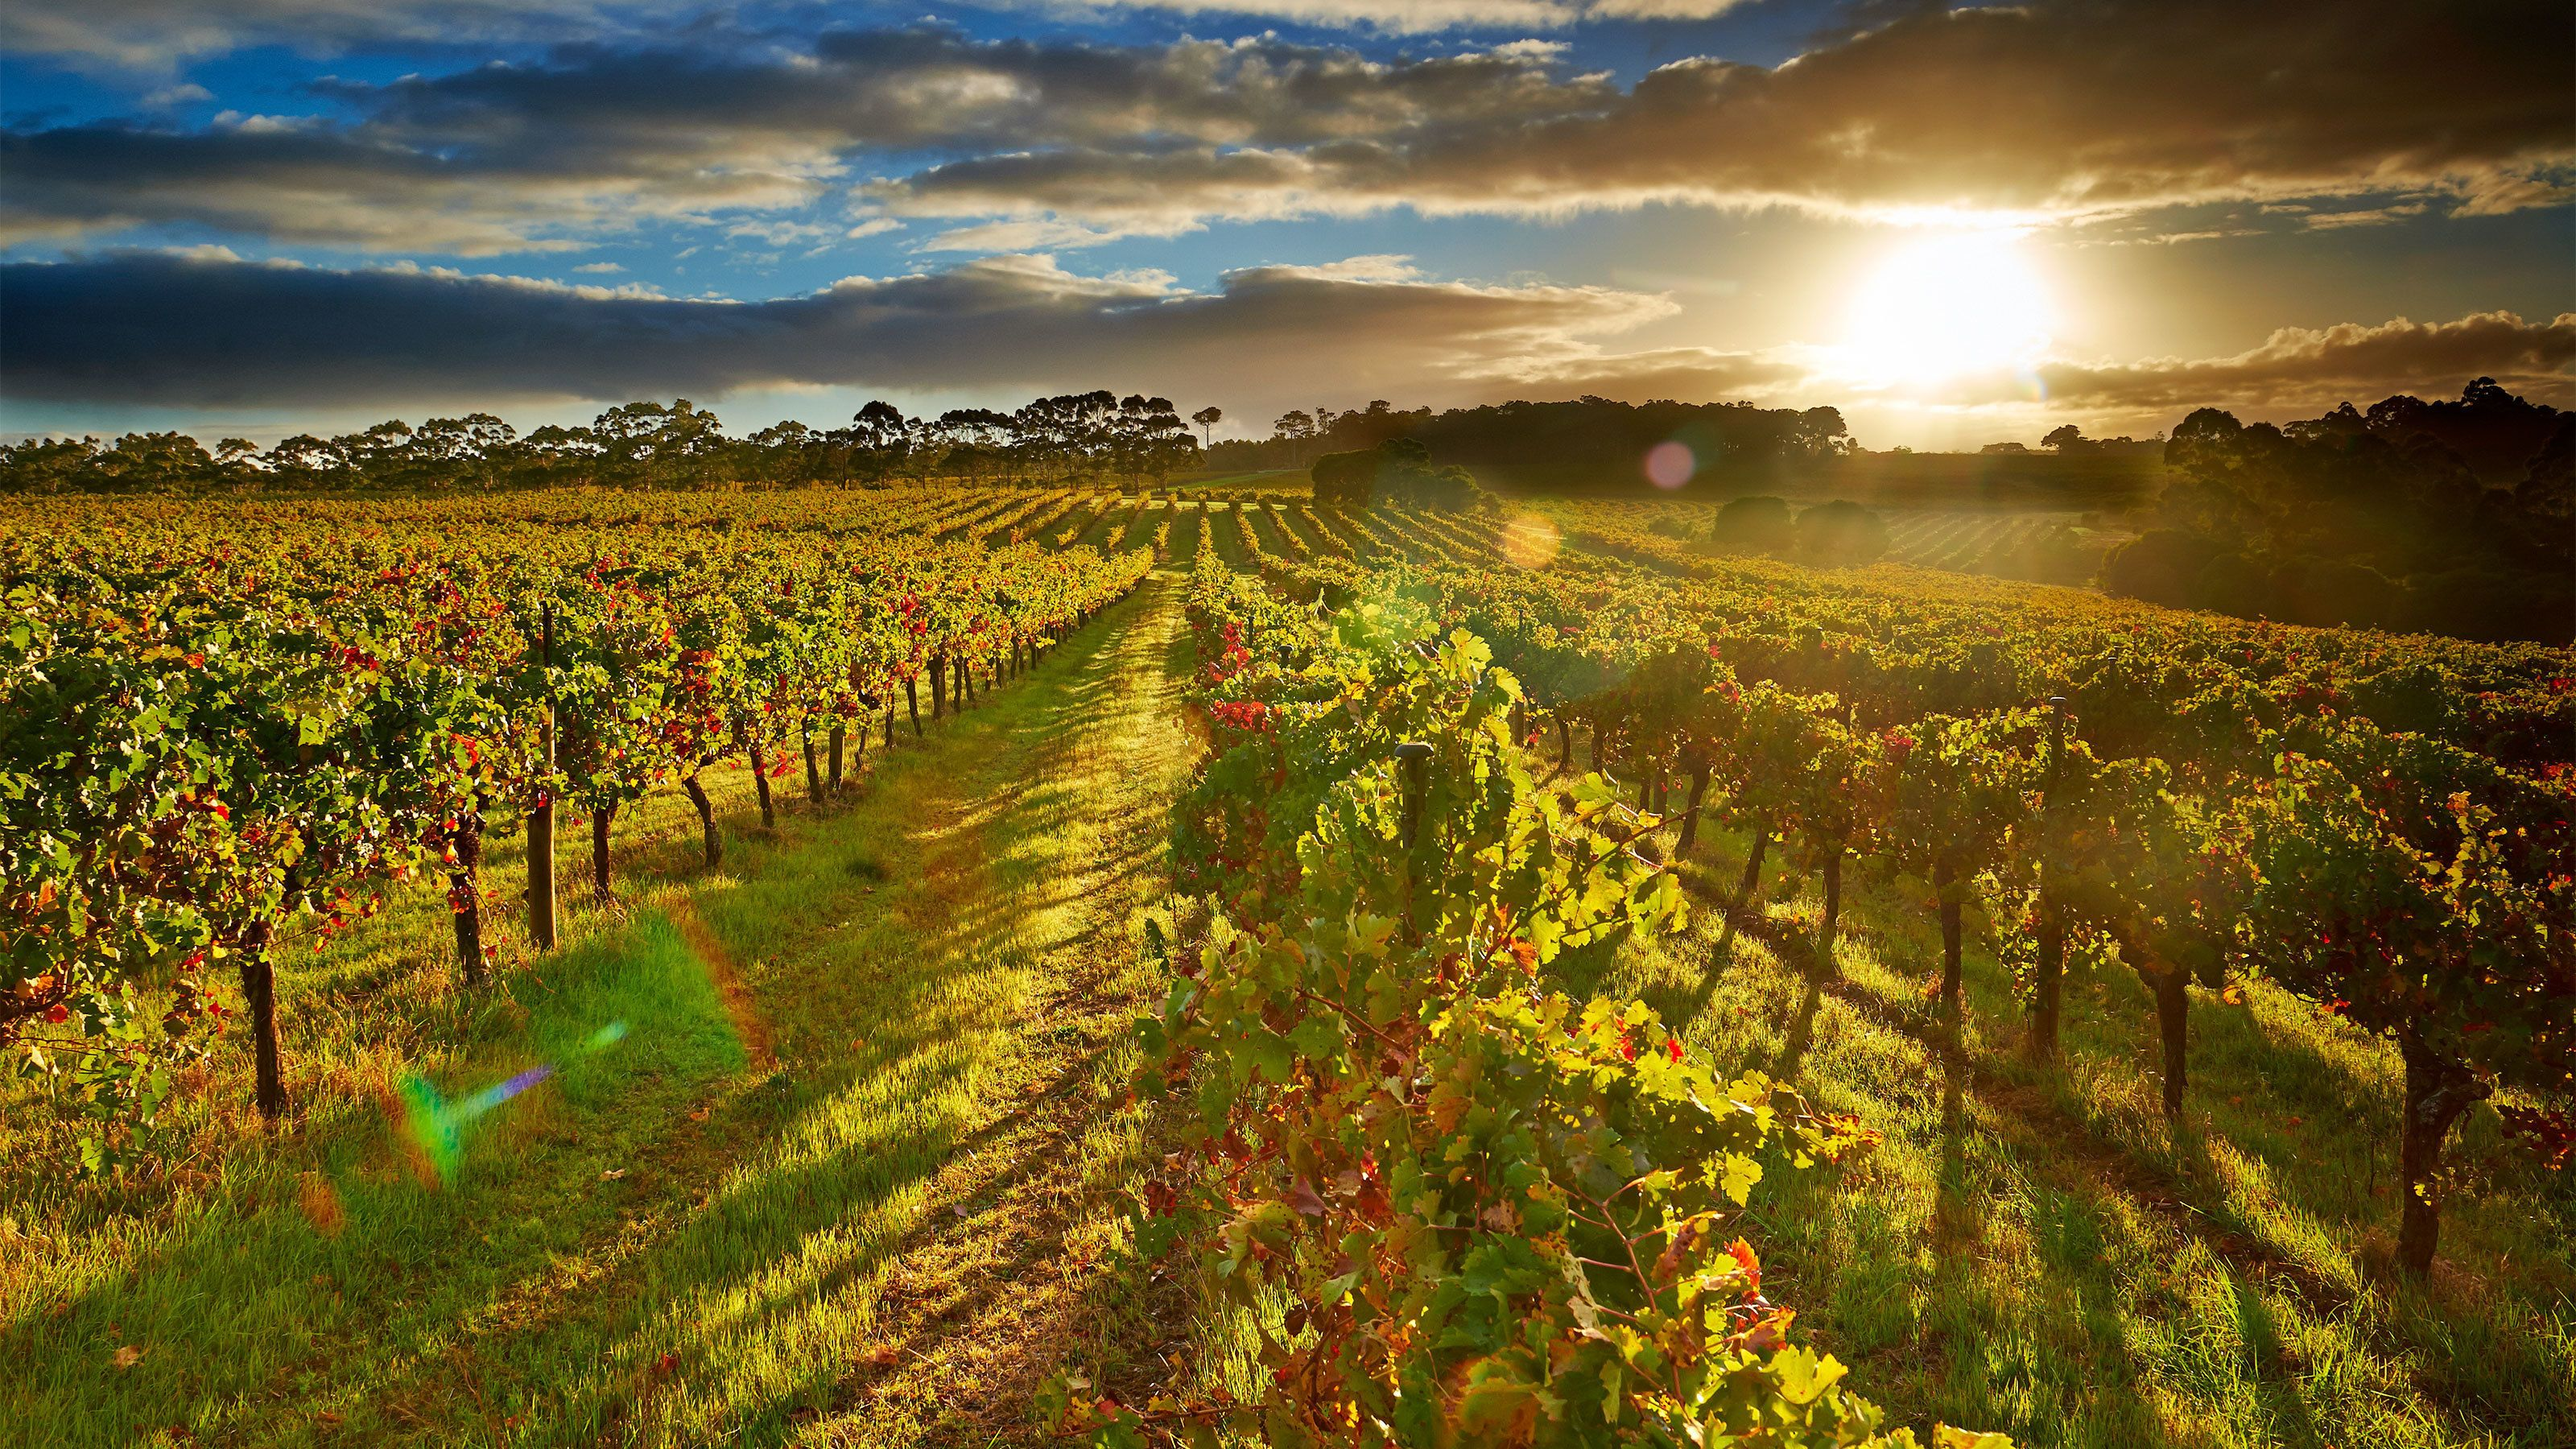 Landscape view of wine vineyard at sunset.